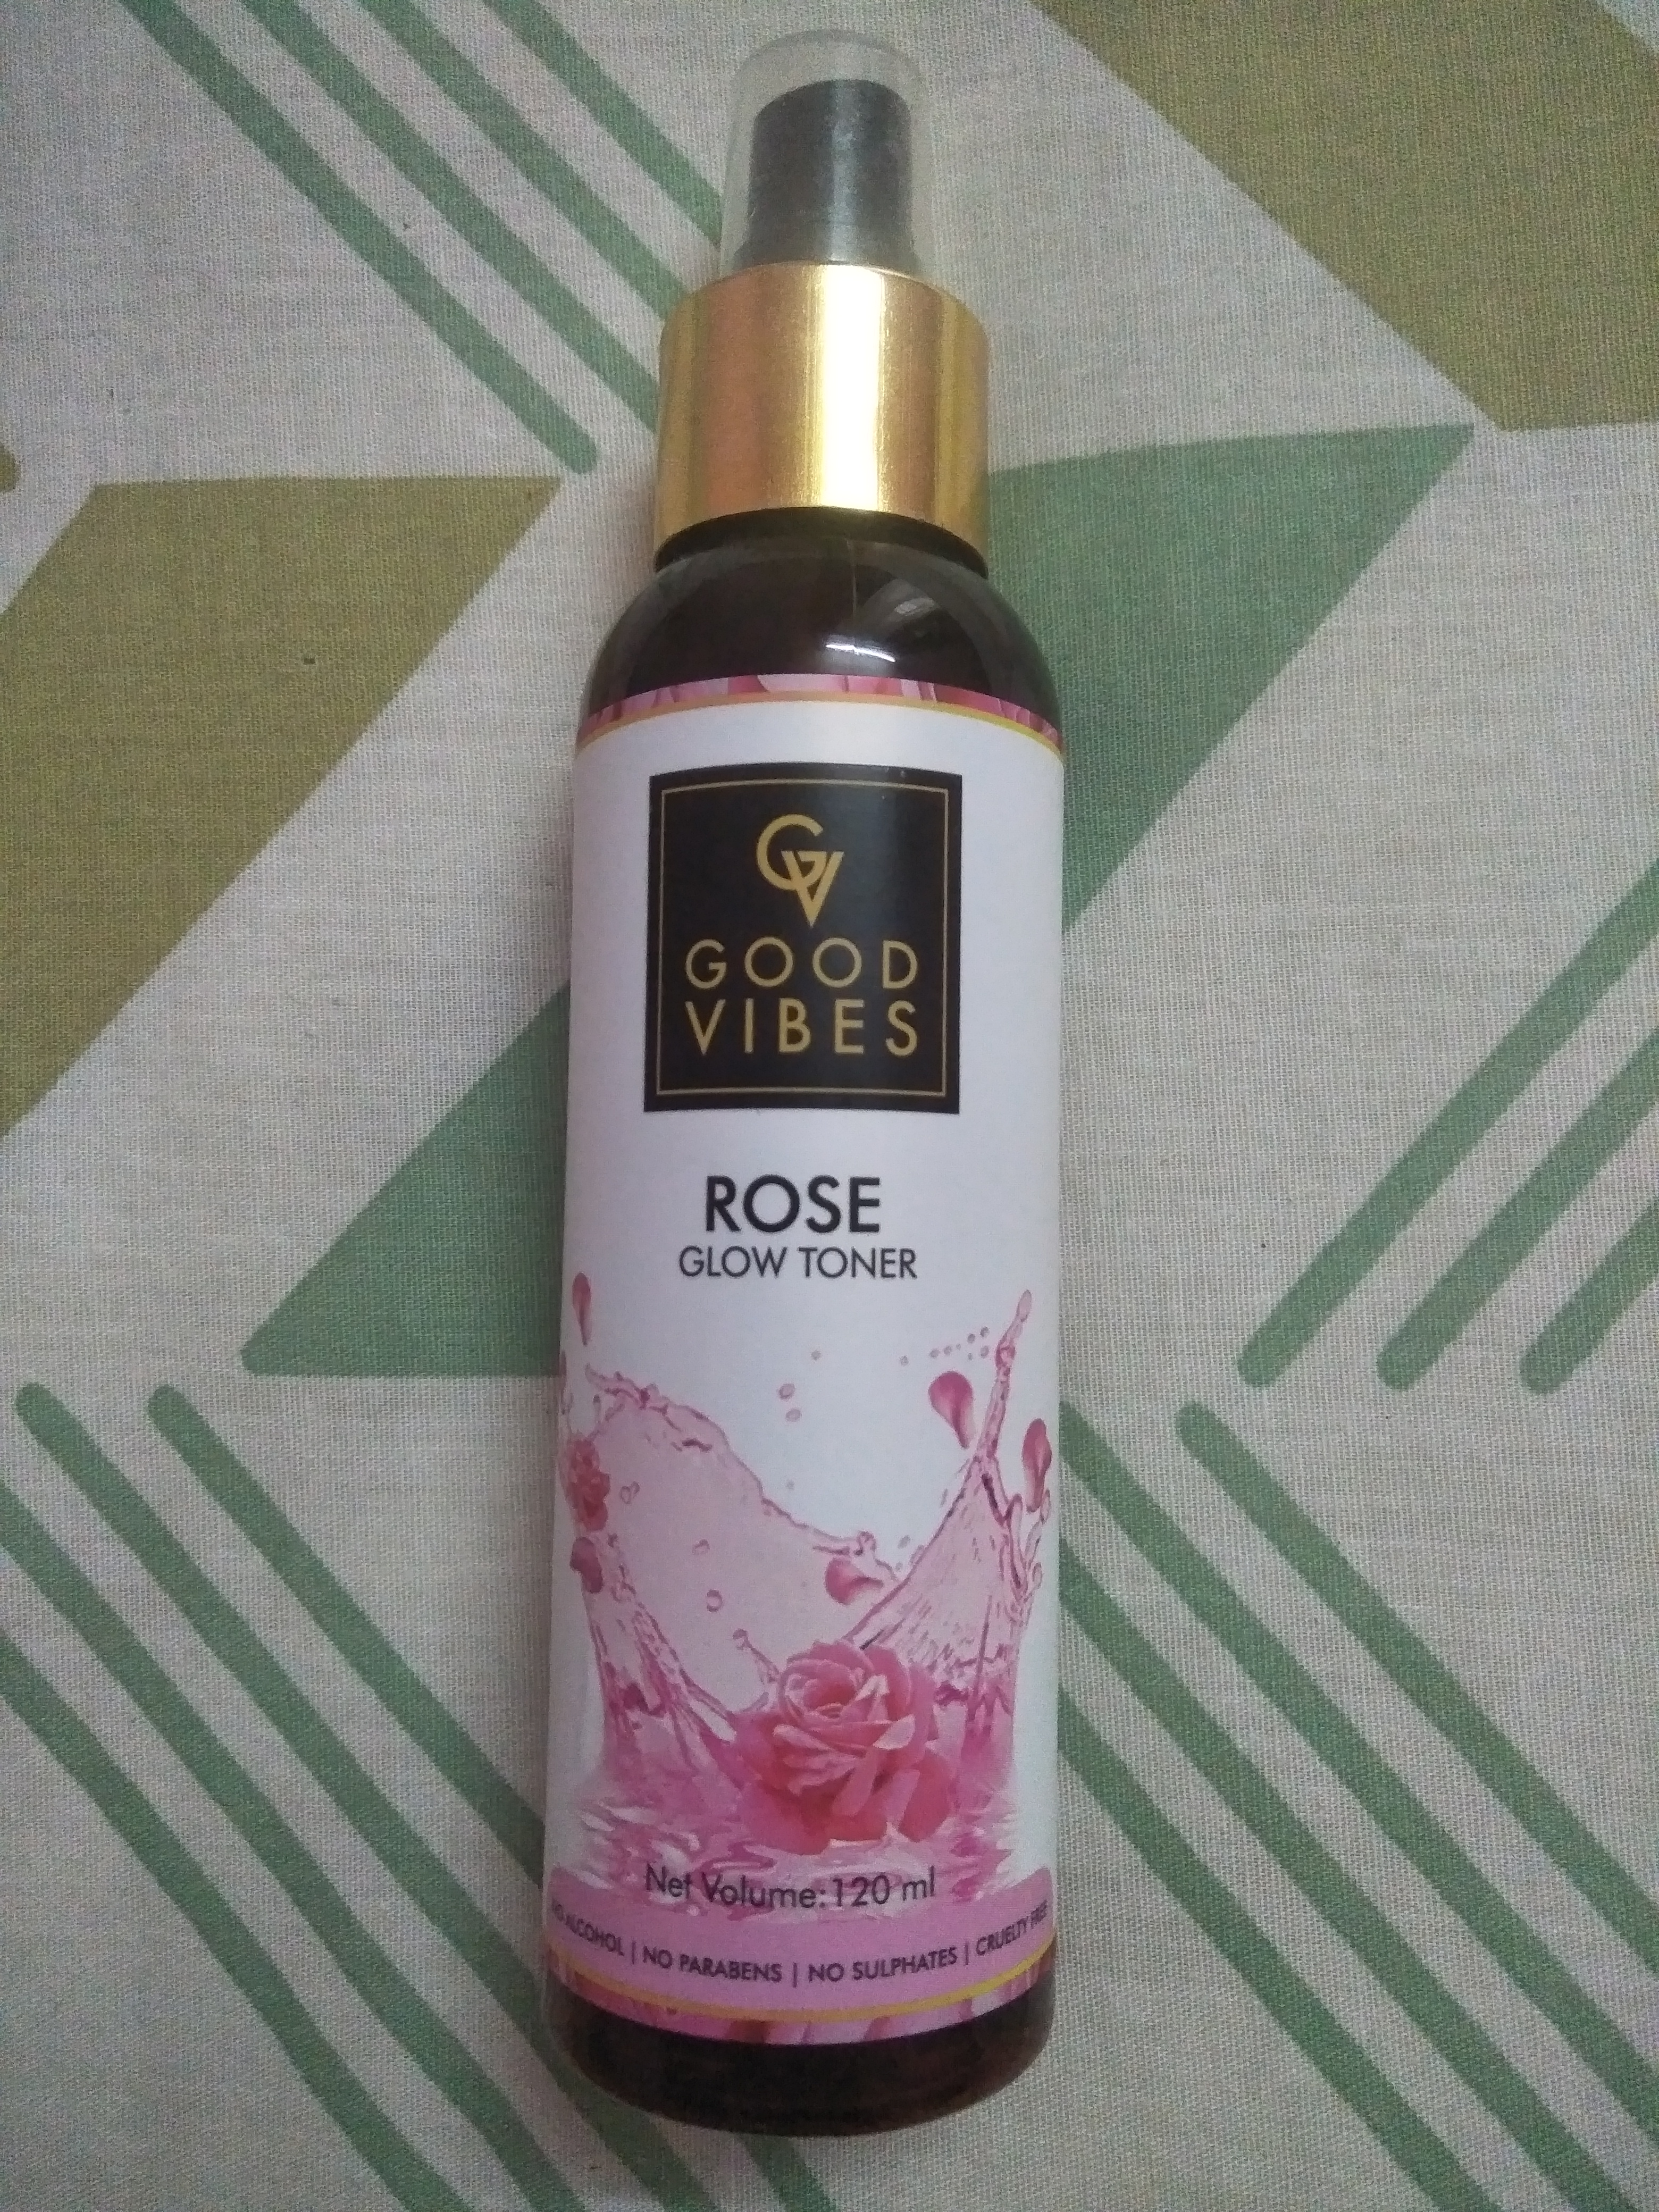 Good Vibes Rose Glow Toner -MY ALL TIME FAVOURITE!-By milien_maria